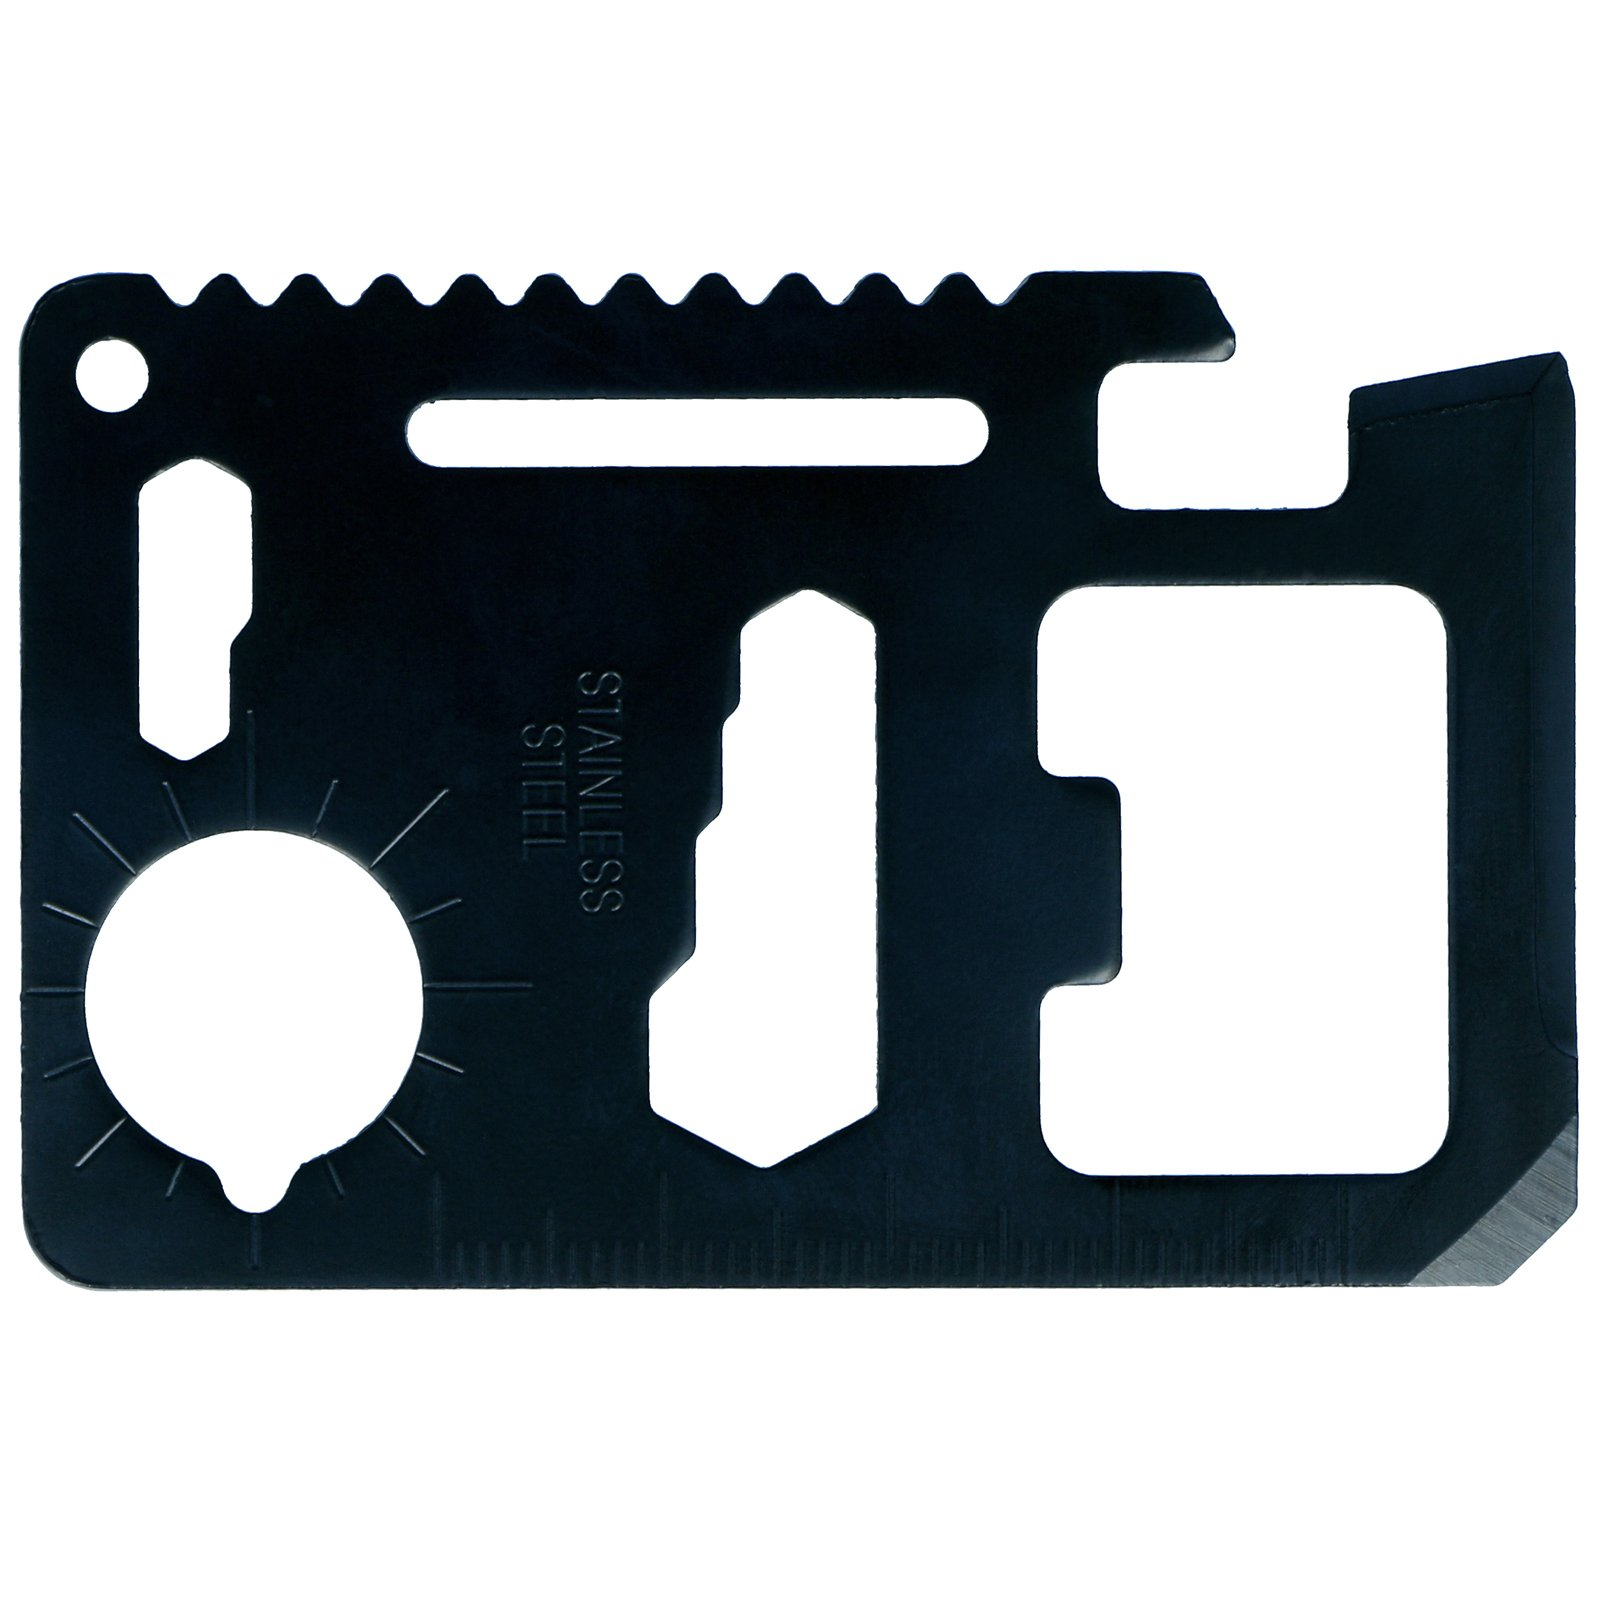 ASR Outdoor 11 in 1 Multi Function Black Credit Card Sized Tool - 10 Pack